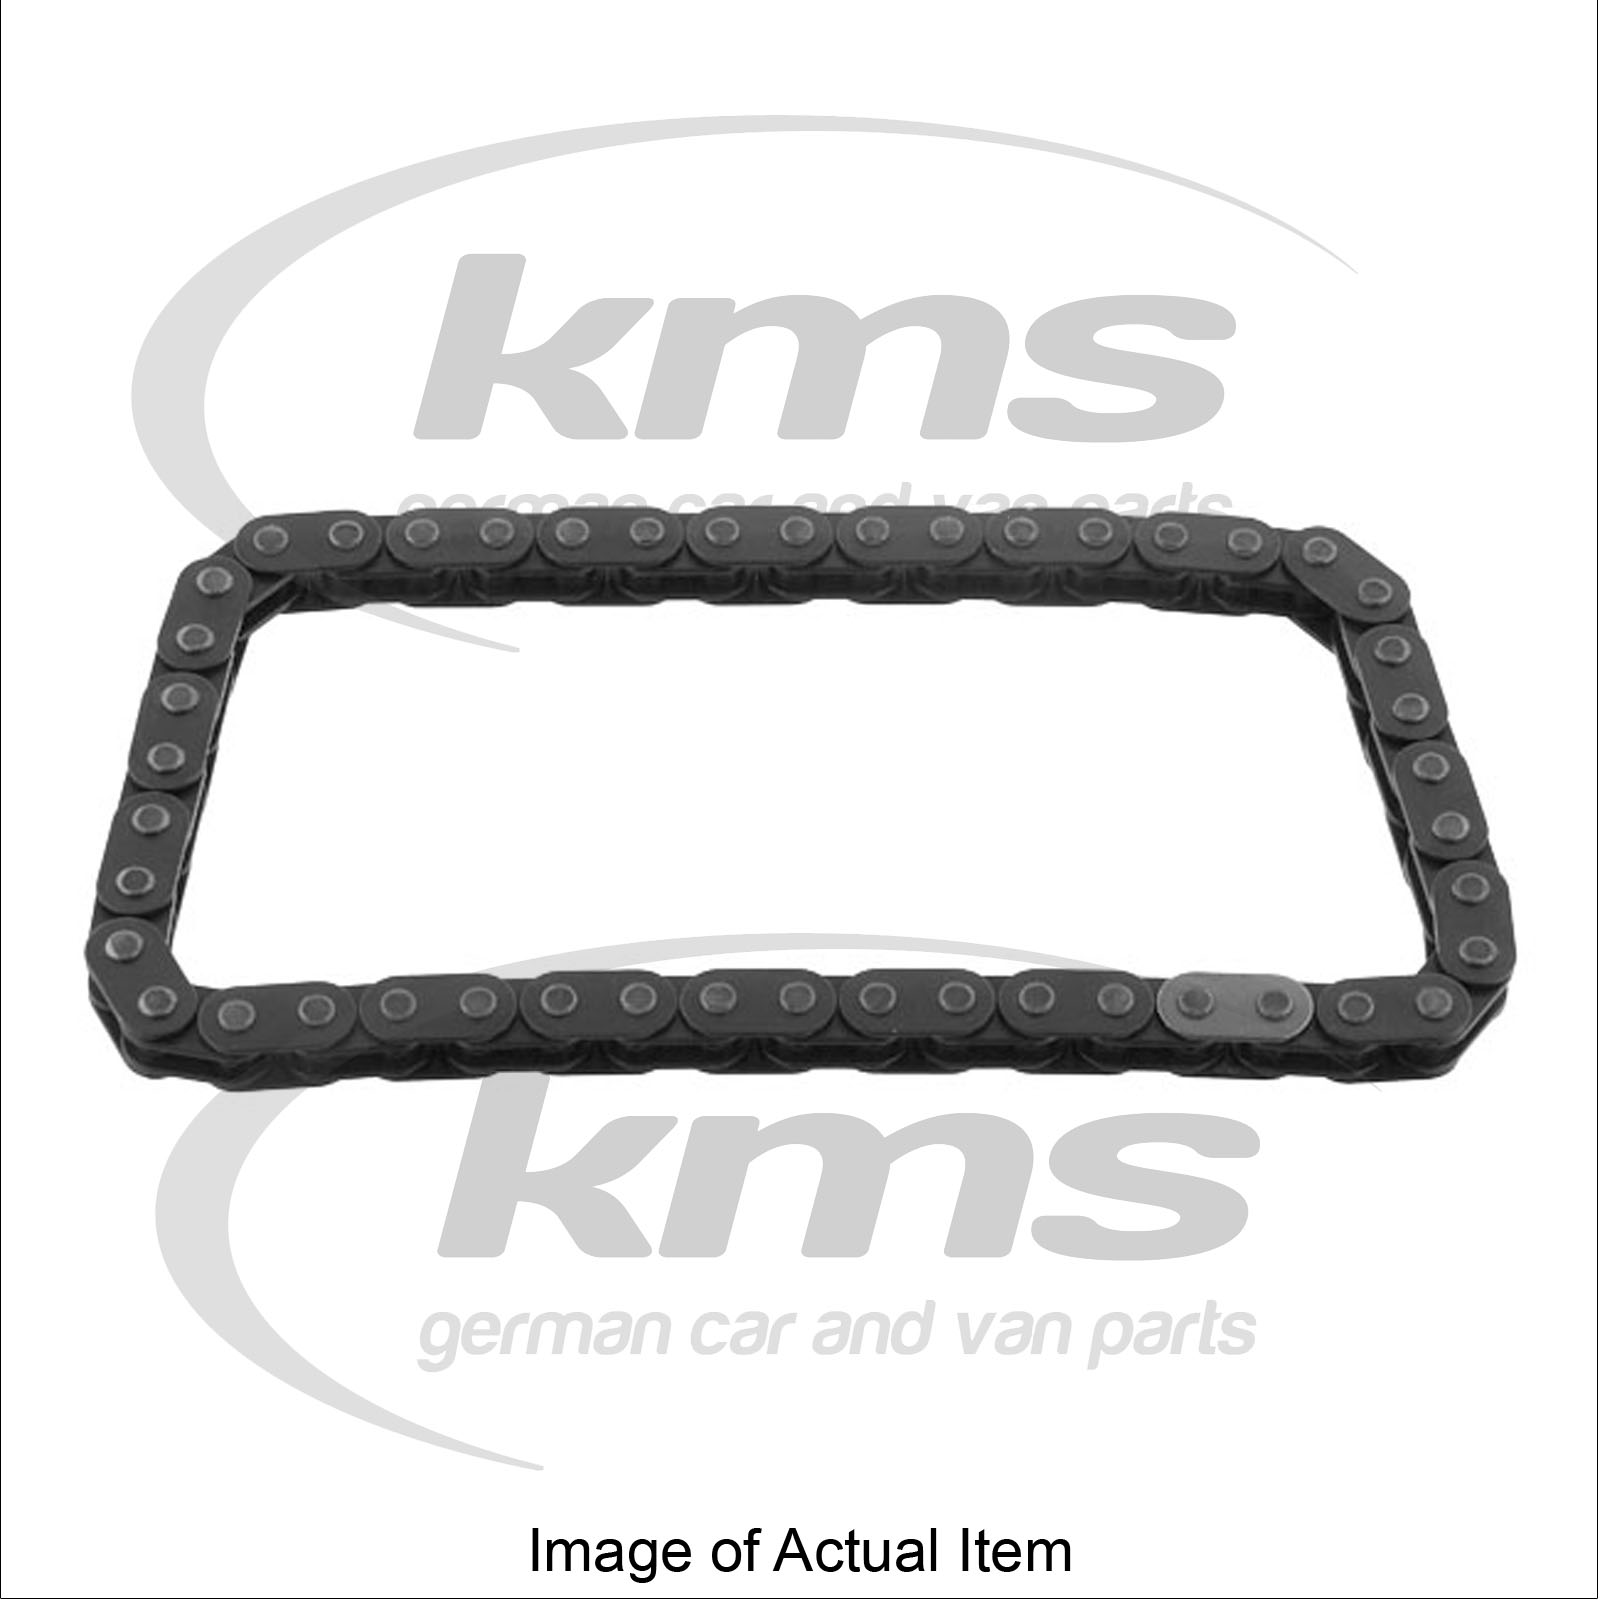 oil pump chain vw golf estate tdi 140 mk 6 2009 2 0l 138 bhp top german qua ebay. Black Bedroom Furniture Sets. Home Design Ideas